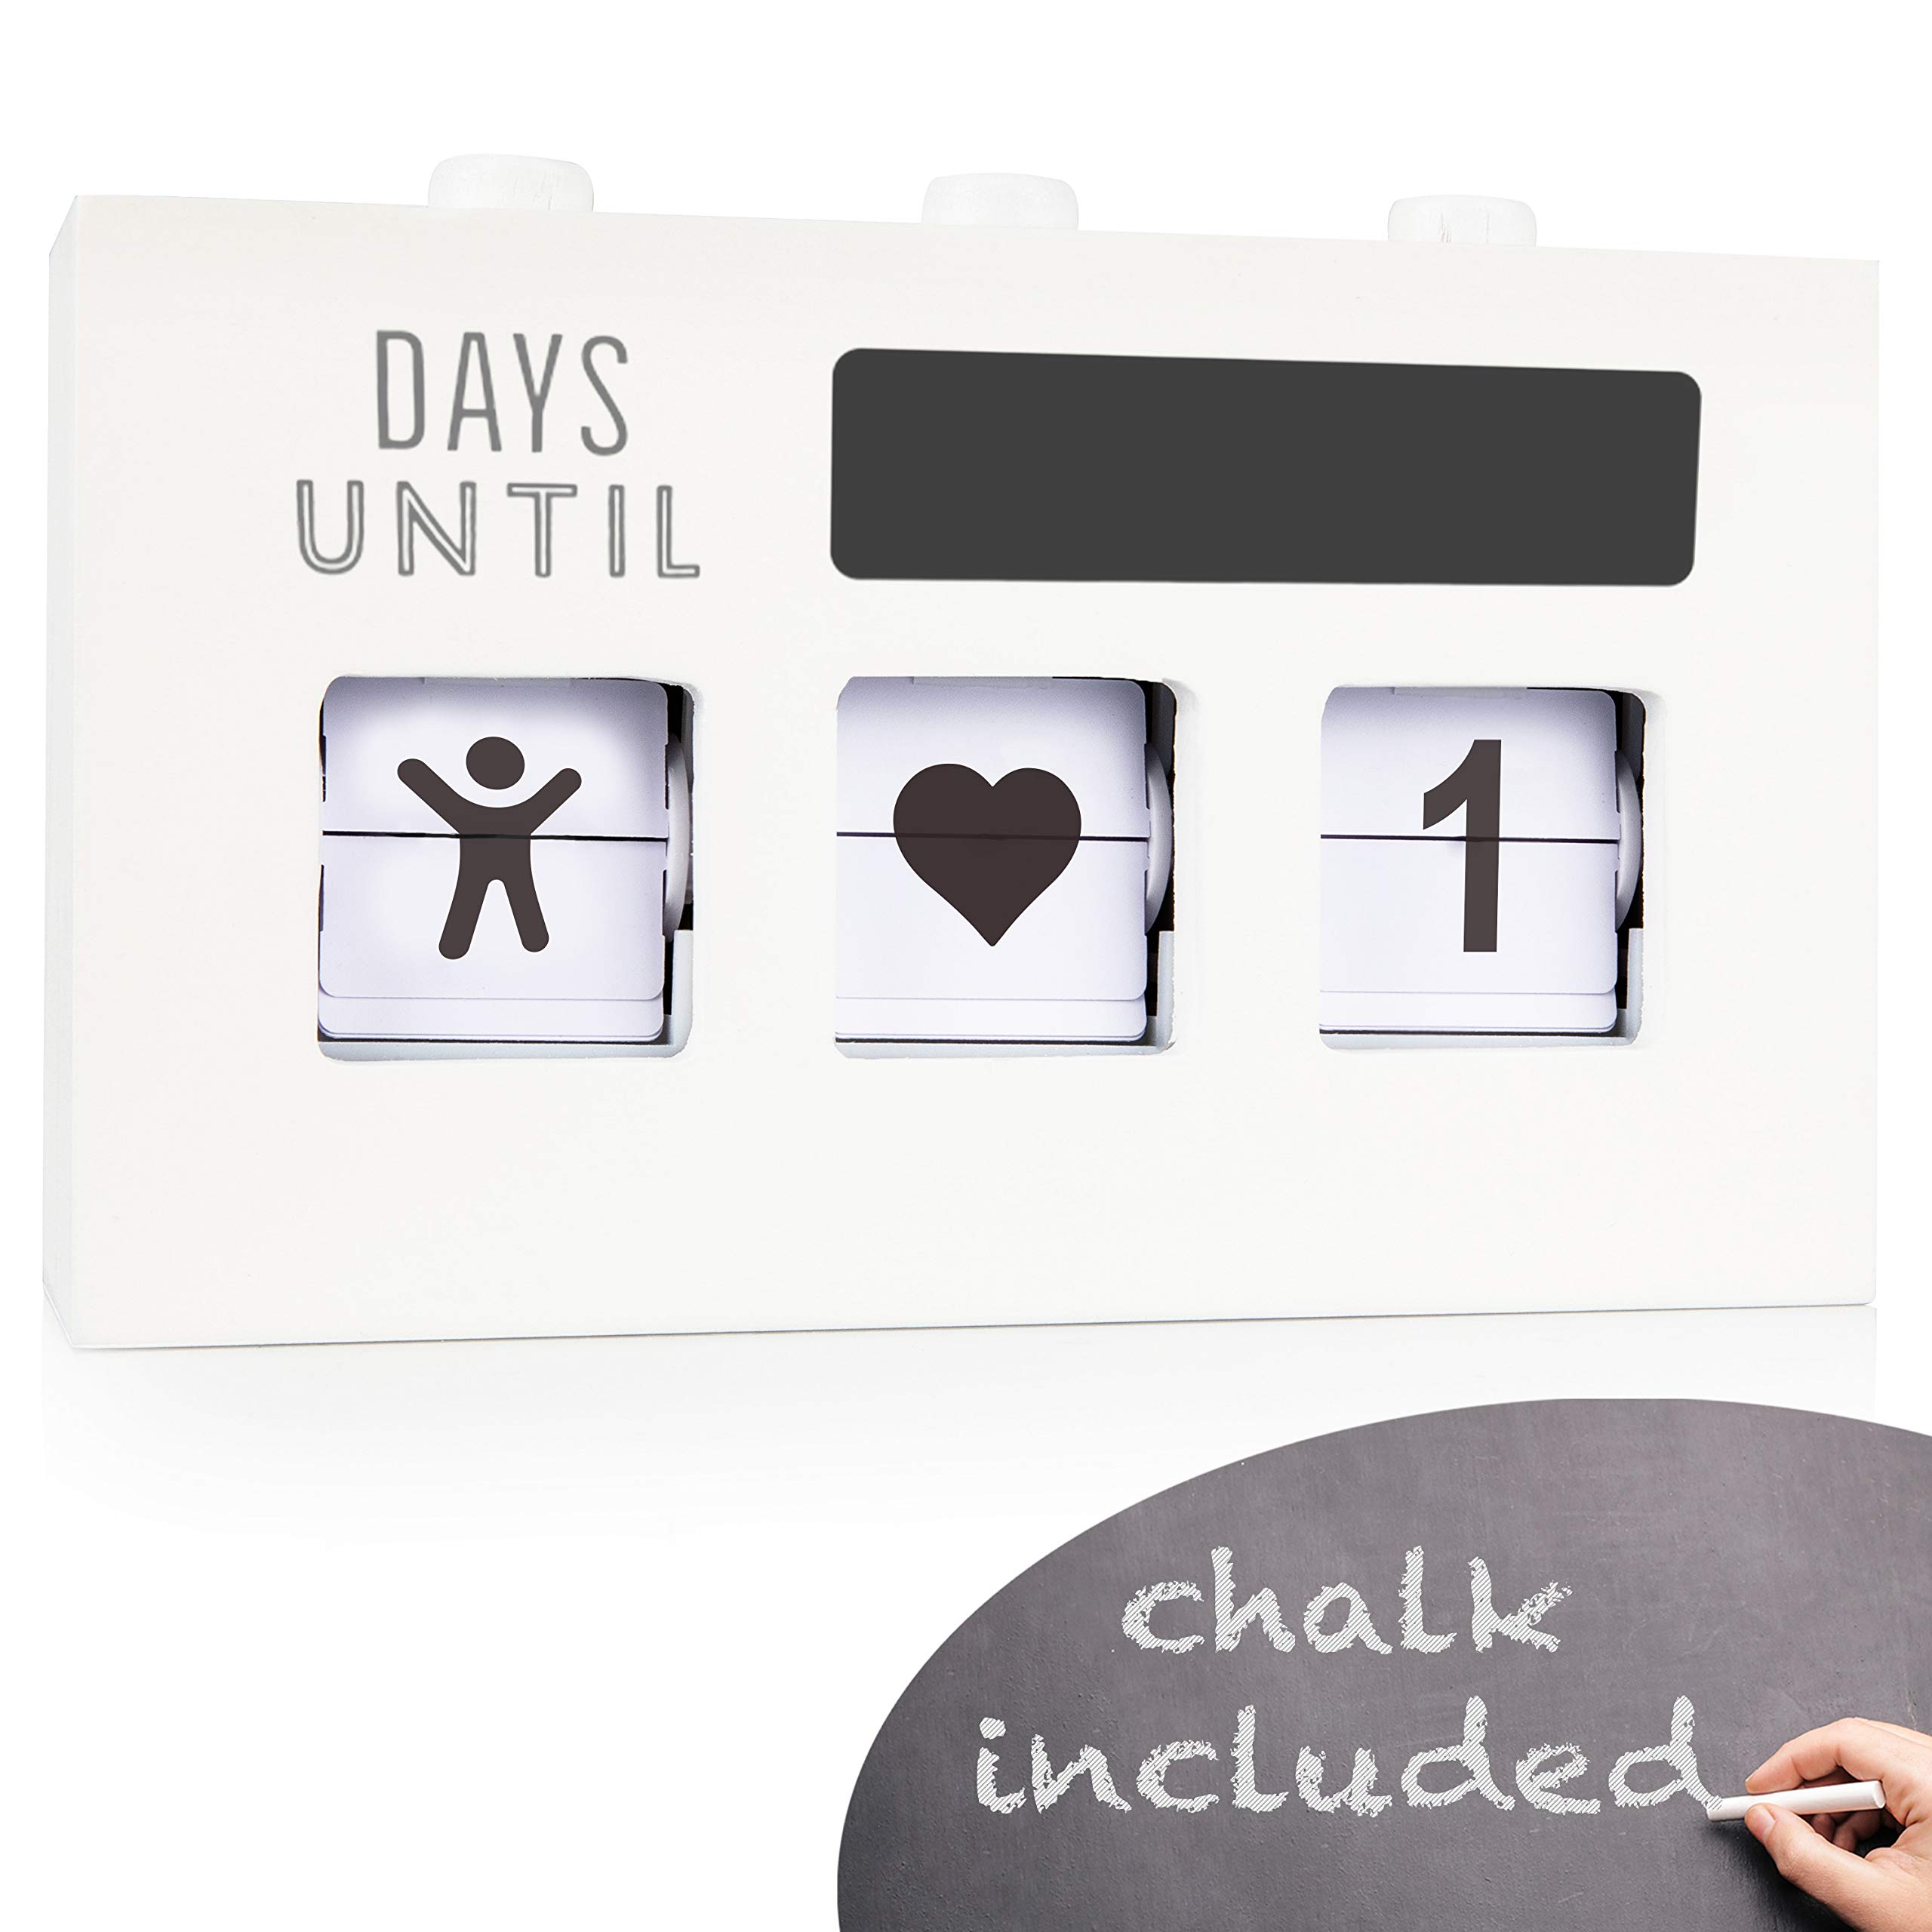 Wood Countdown Calendar Box: Handmade Wooden Box with 3 Changeable Viewing Windows to Show 0-999 Day Count Down Clock for Christmas, Wedding, Birthday, Kids Baby Age Blocks, Pregnancy, Baby Due Date by amehla